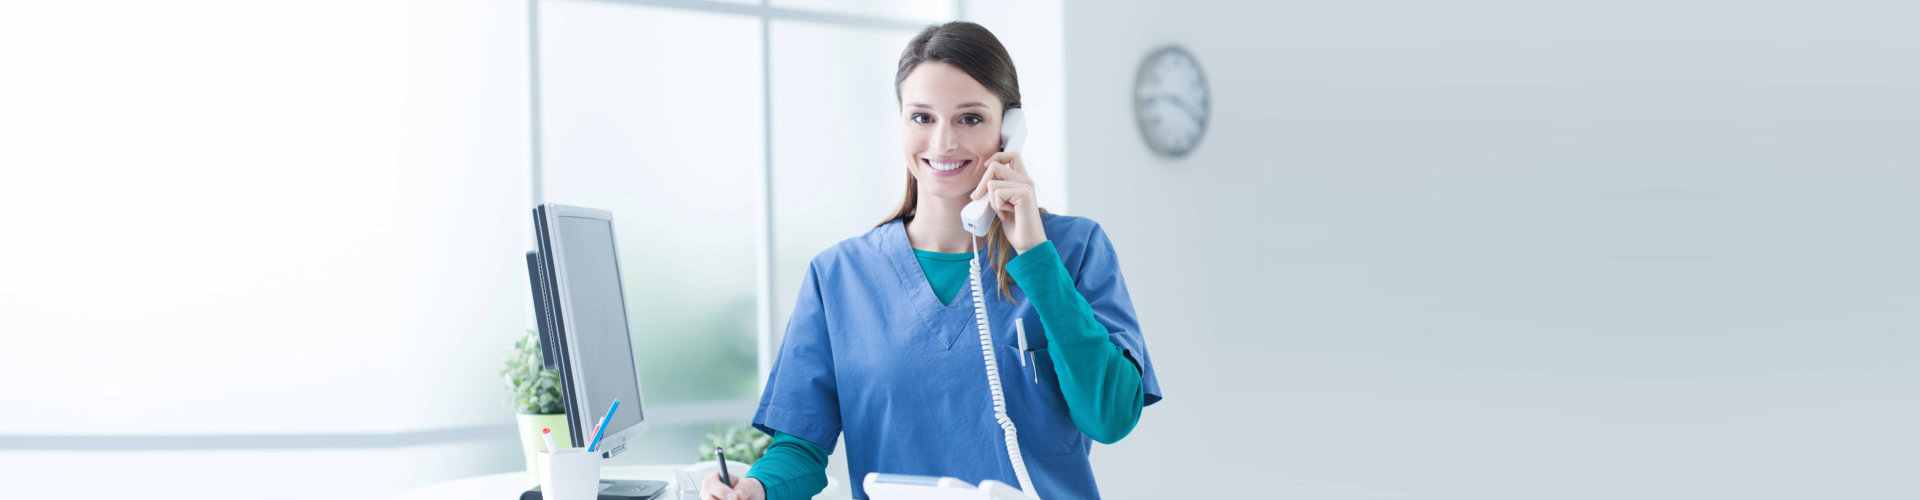 caregiver answering a telephone call